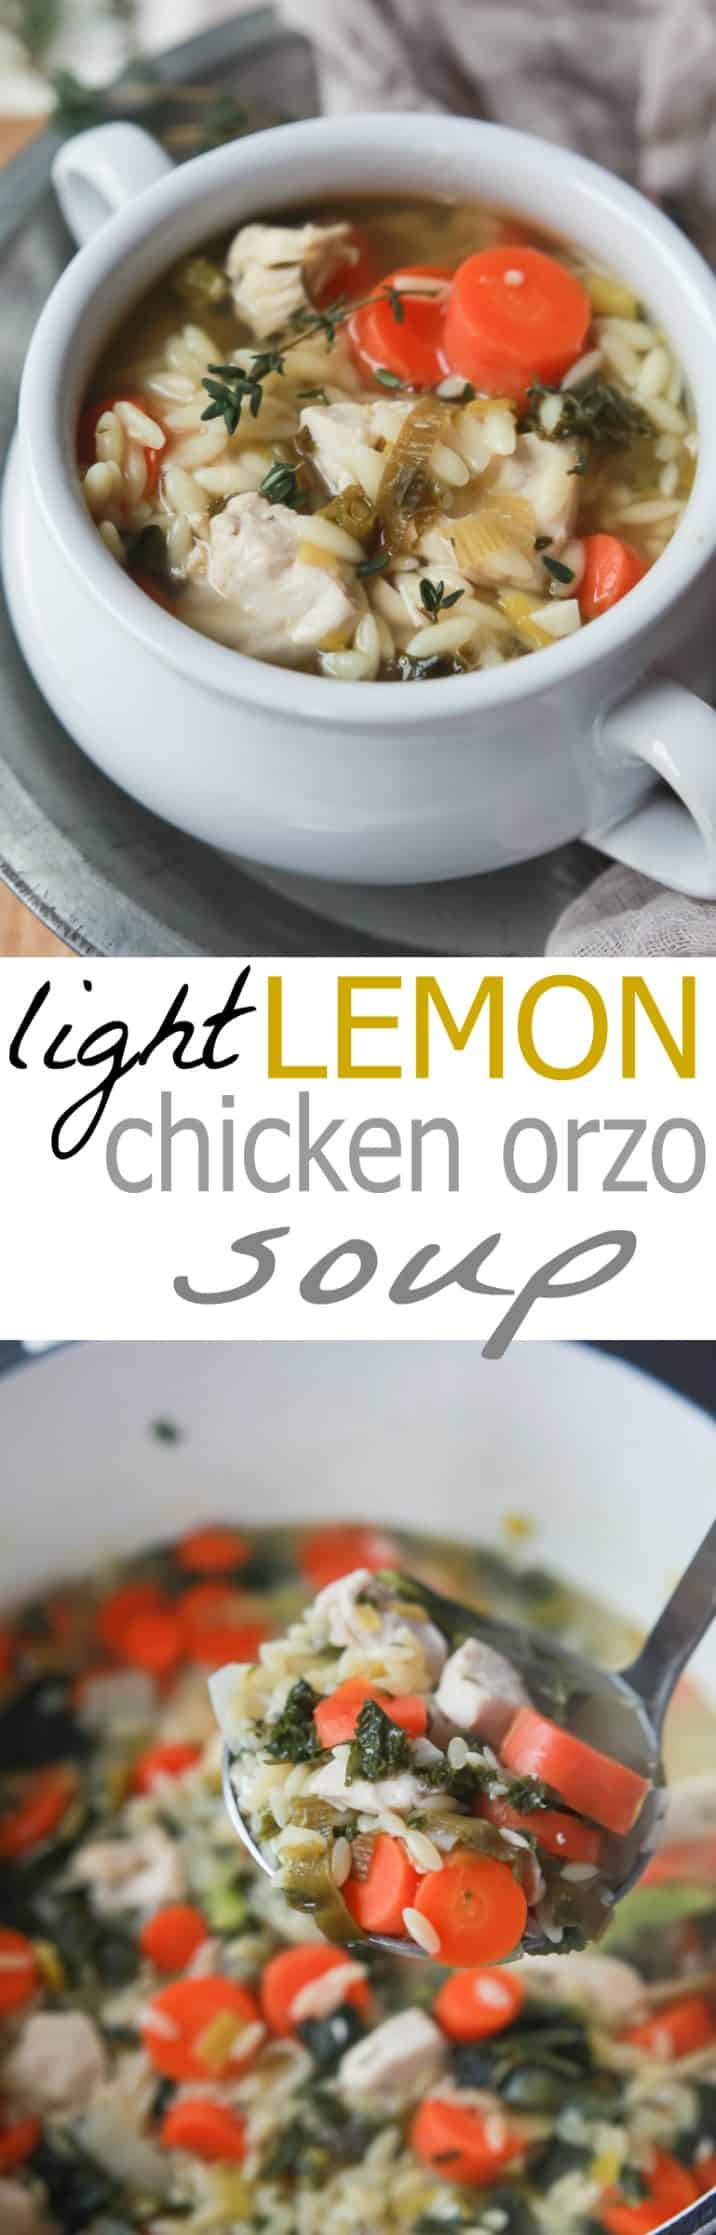 Light Lemon Chicken Orzo Soup - the perfect comfort soup that's full of vegetables, protein, and a fresh lemony broth that you'll swoon over! This soup is pure bliss on cold winter day! | joyfulhealthyeats.com